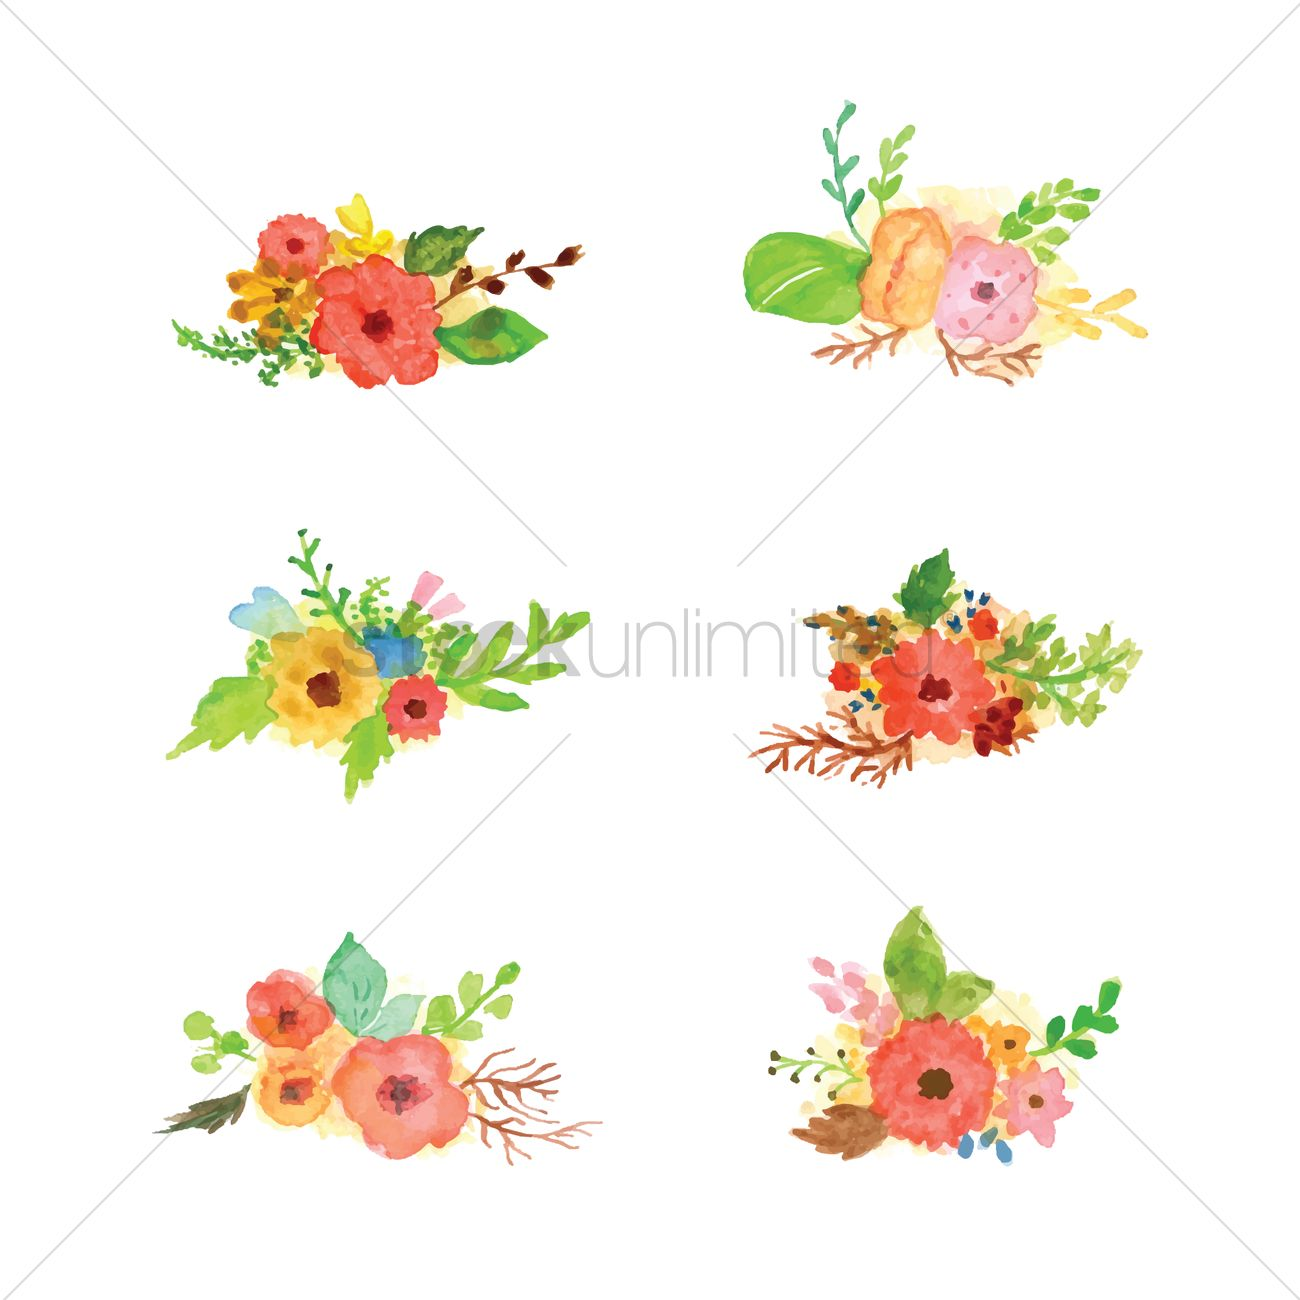 Collection of watercolor flowers with leaves vector image 1629254 collection of watercolor flowers with leaves vector graphic izmirmasajfo Choice Image